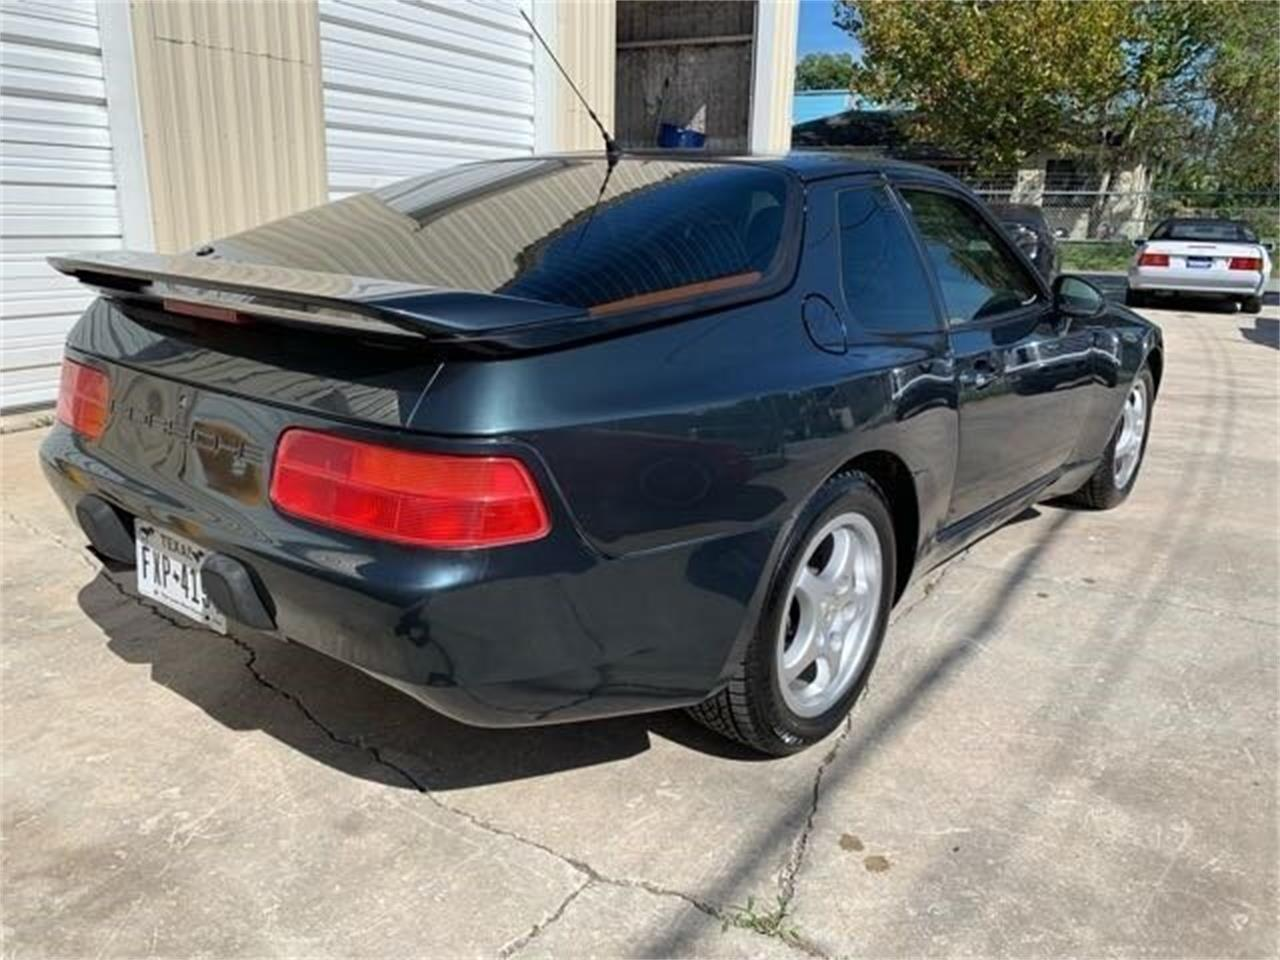 1995 Porsche 968 for sale in Holly Hill, FL – photo 12